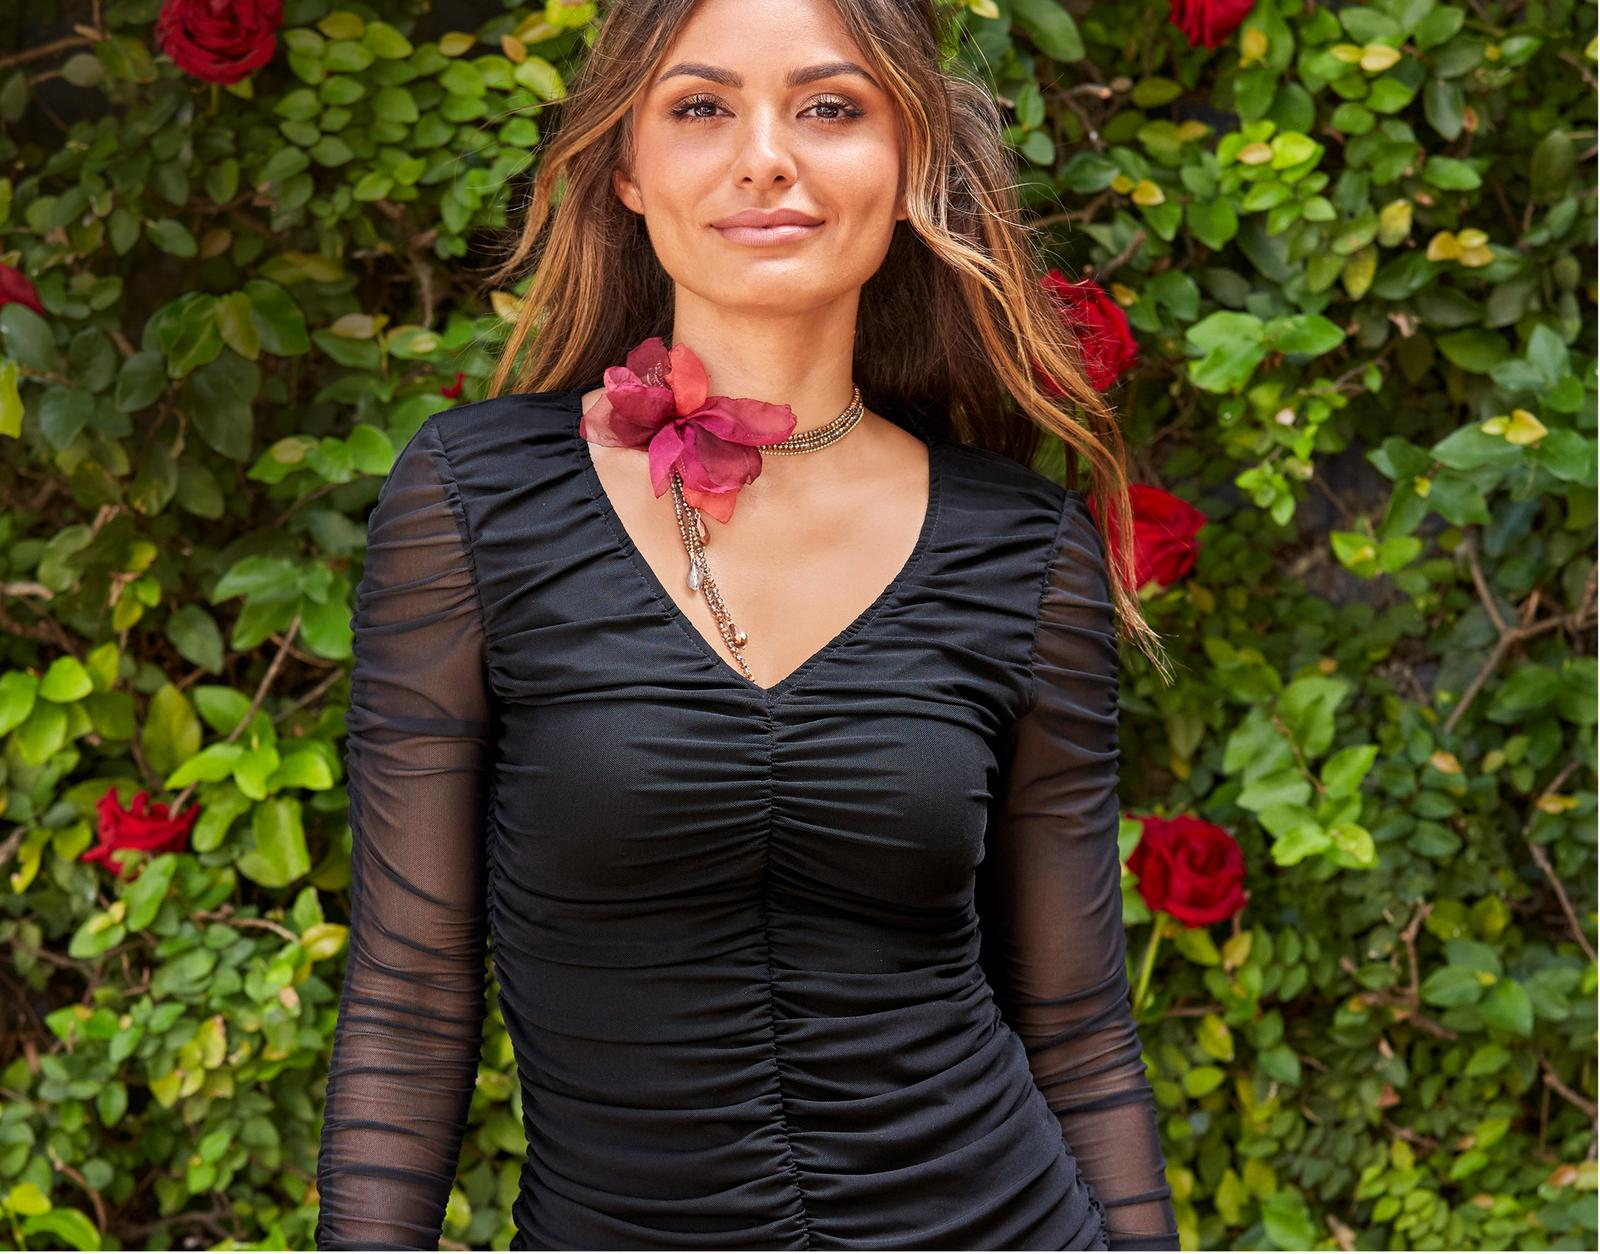 model wearing a ruched black long-sleeve top and a flower embellished choker.